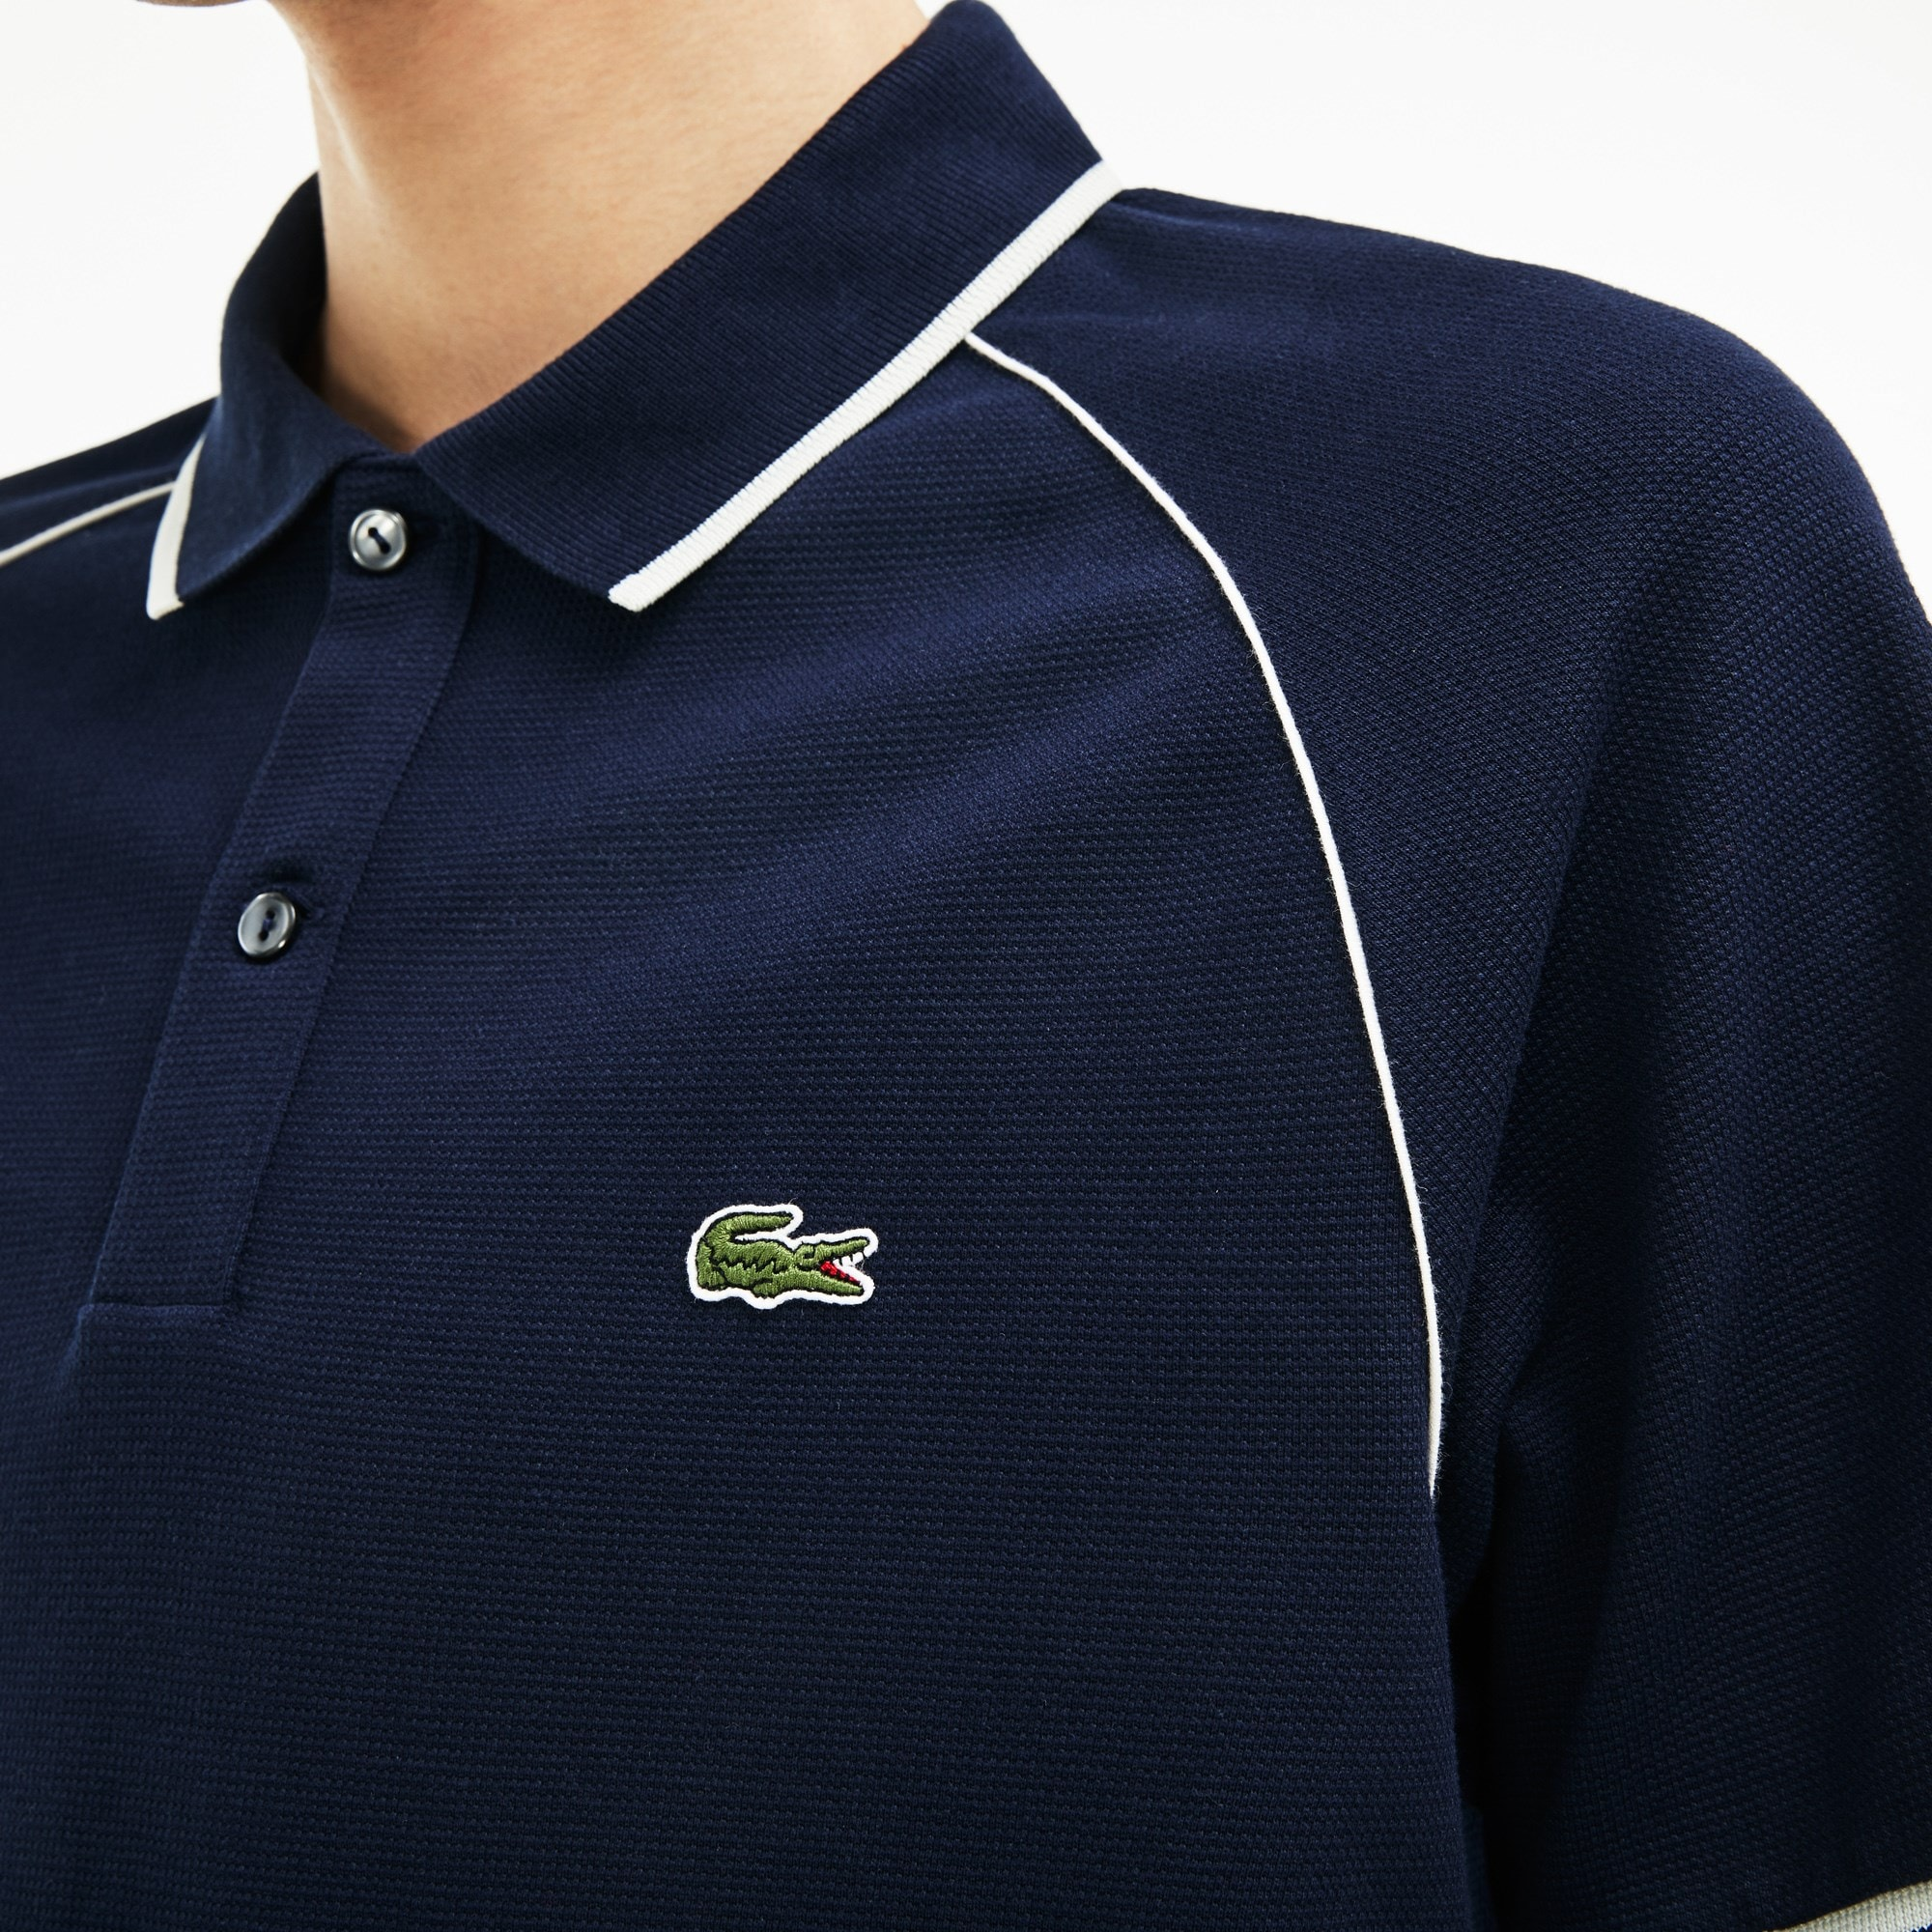 182d86af0e Men's Lacoste Classic Fit Piped Square Knit Polo Shirt